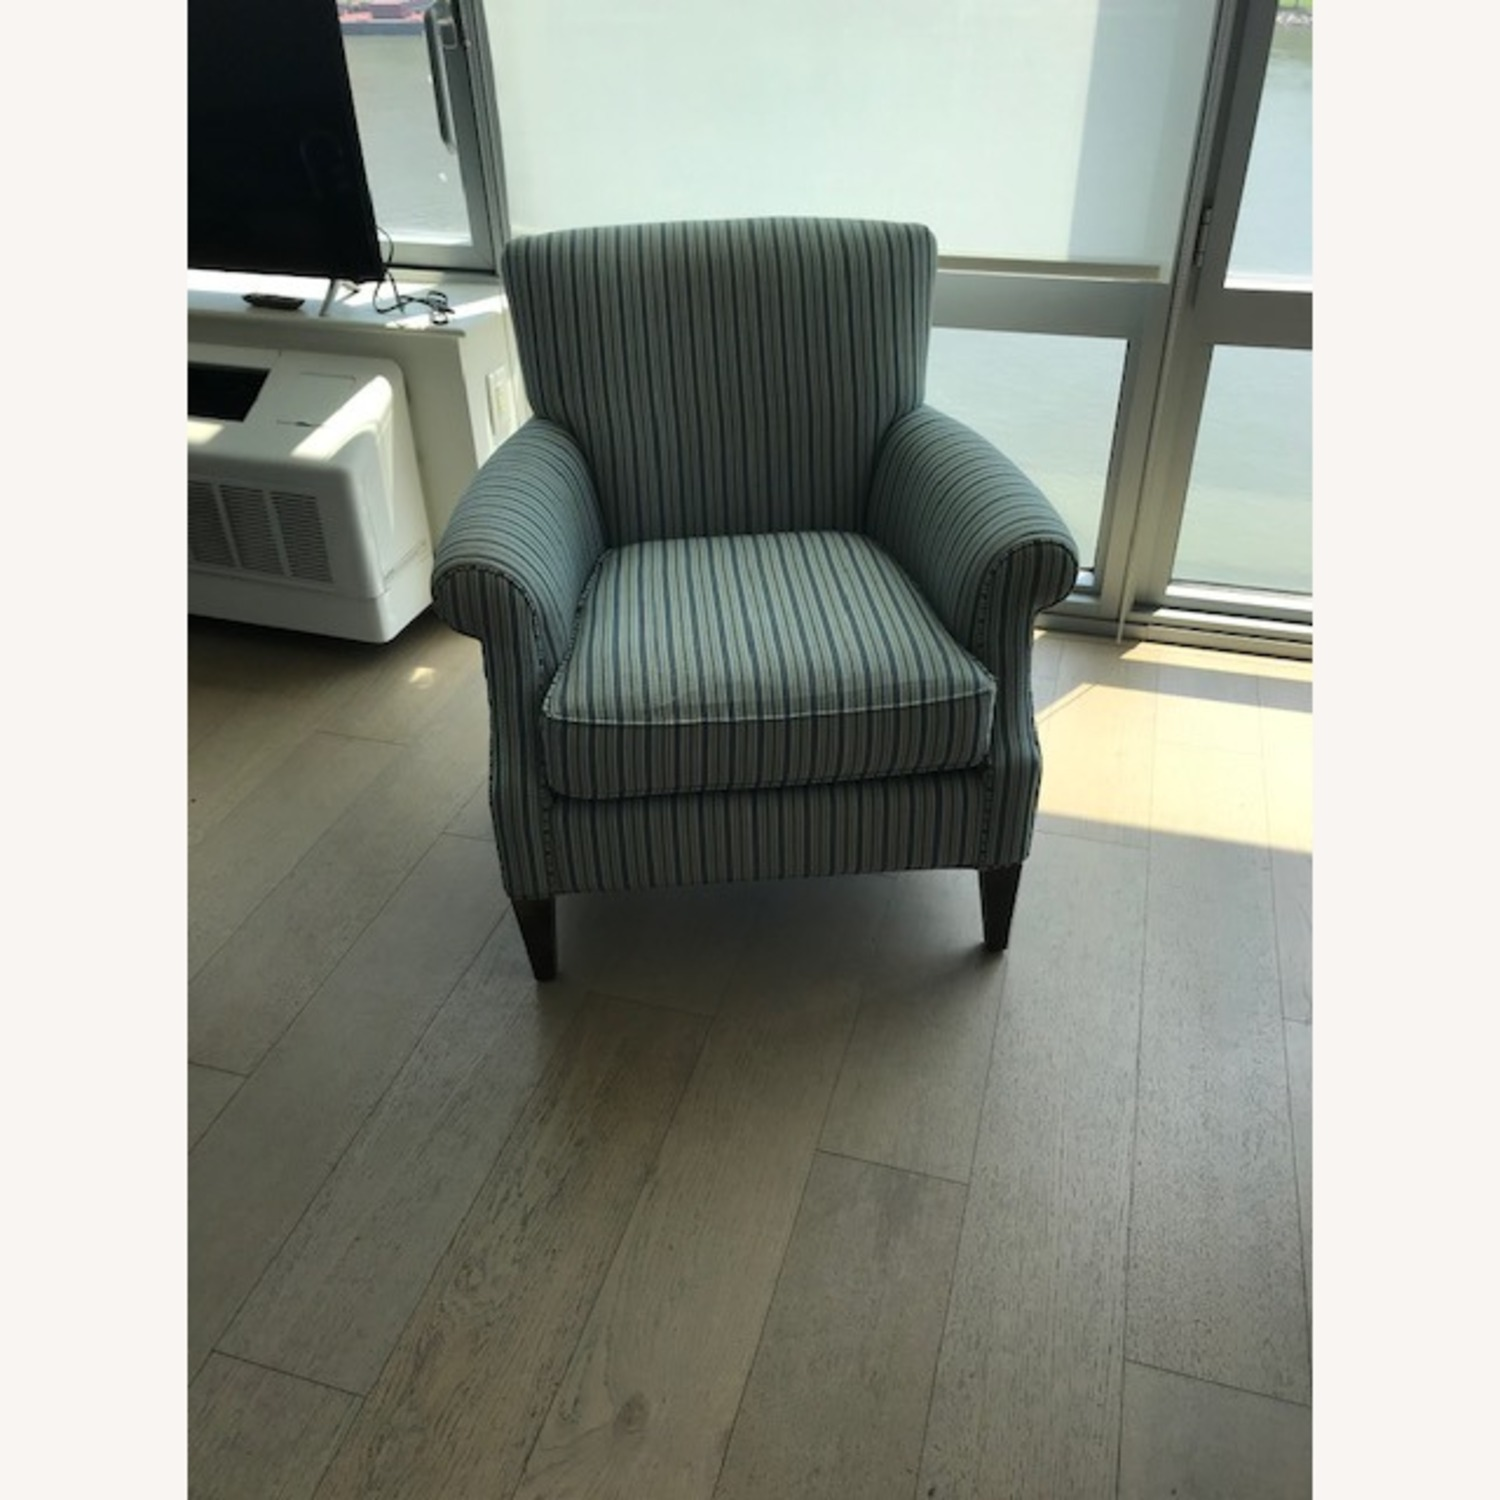 Crate & Barrel Elyse Chair - image-1